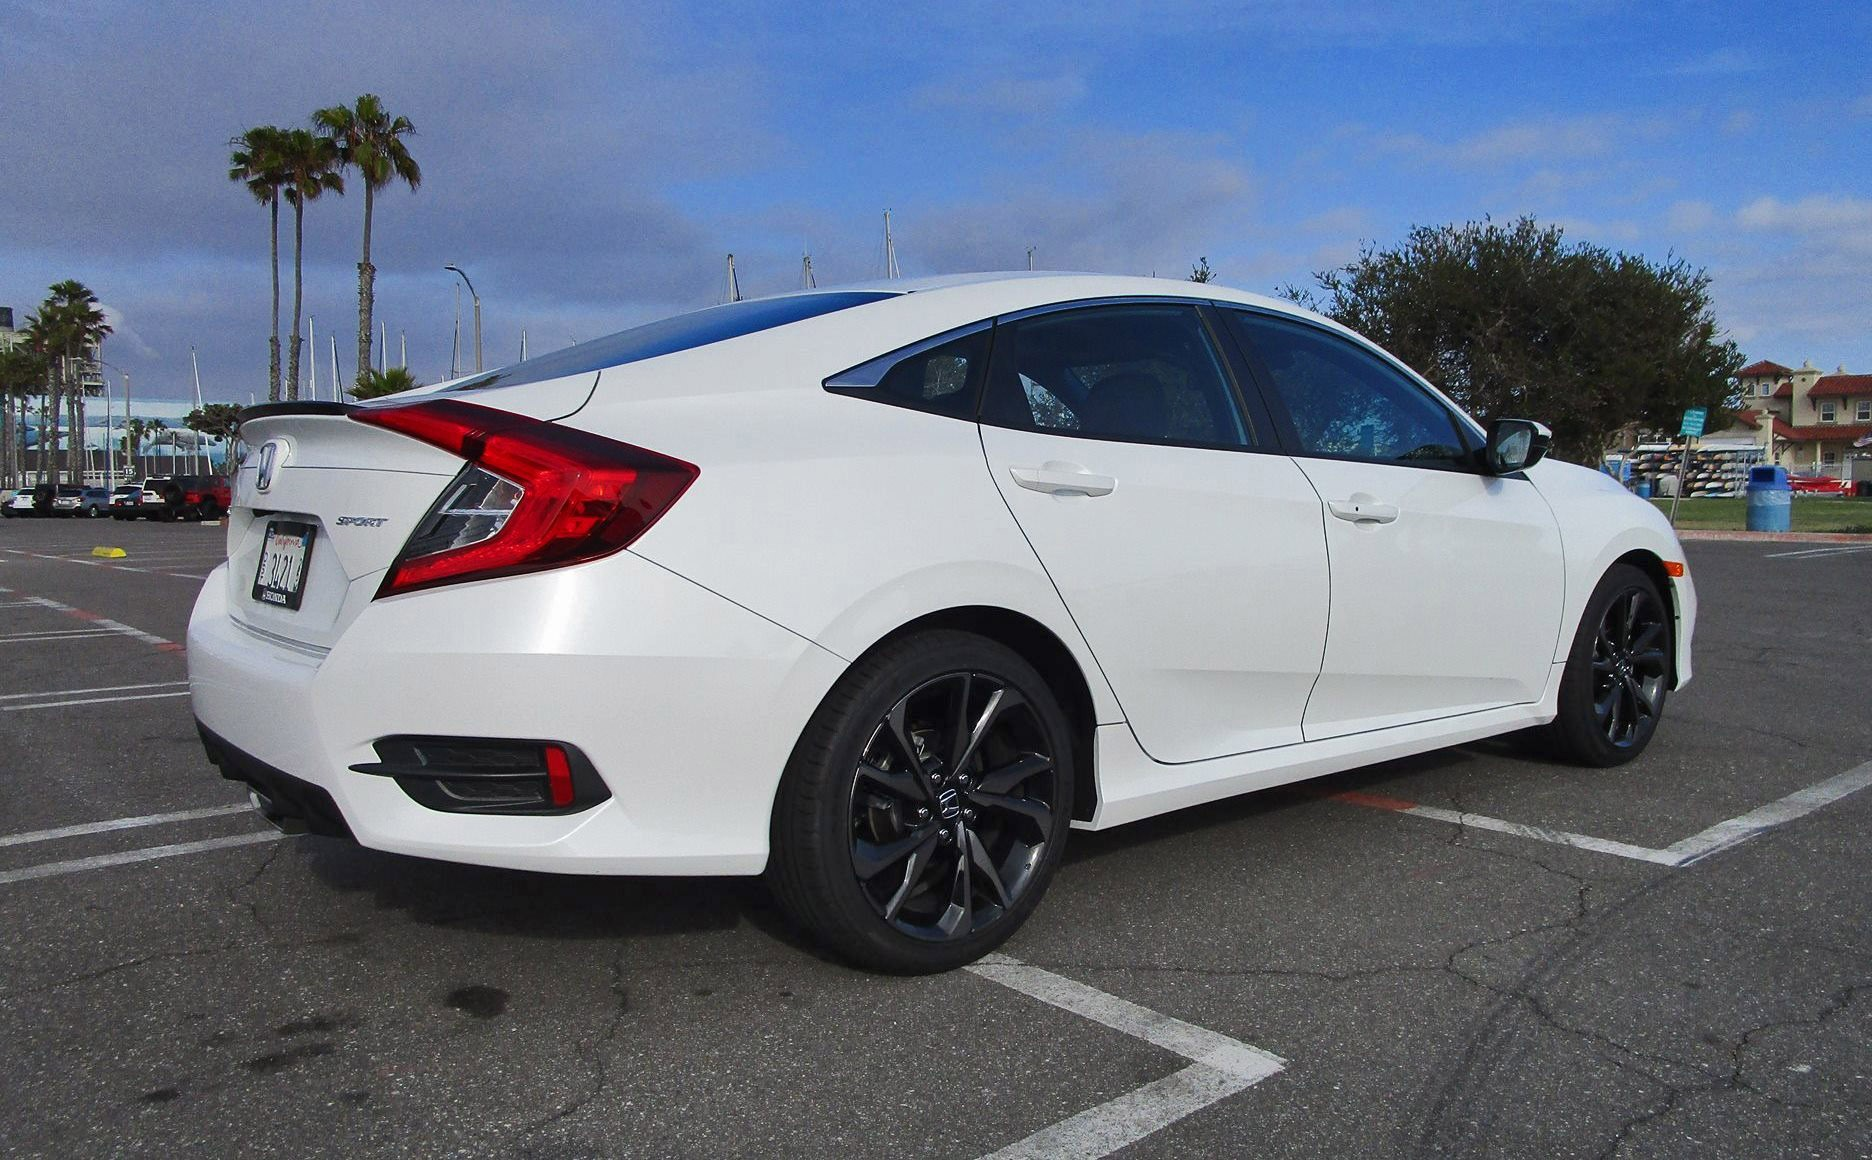 2019 Honda Civic Sport 2 0l 4 Door Manual Review By Ben Lewis Road Test Reviews Car Revs Daily Com